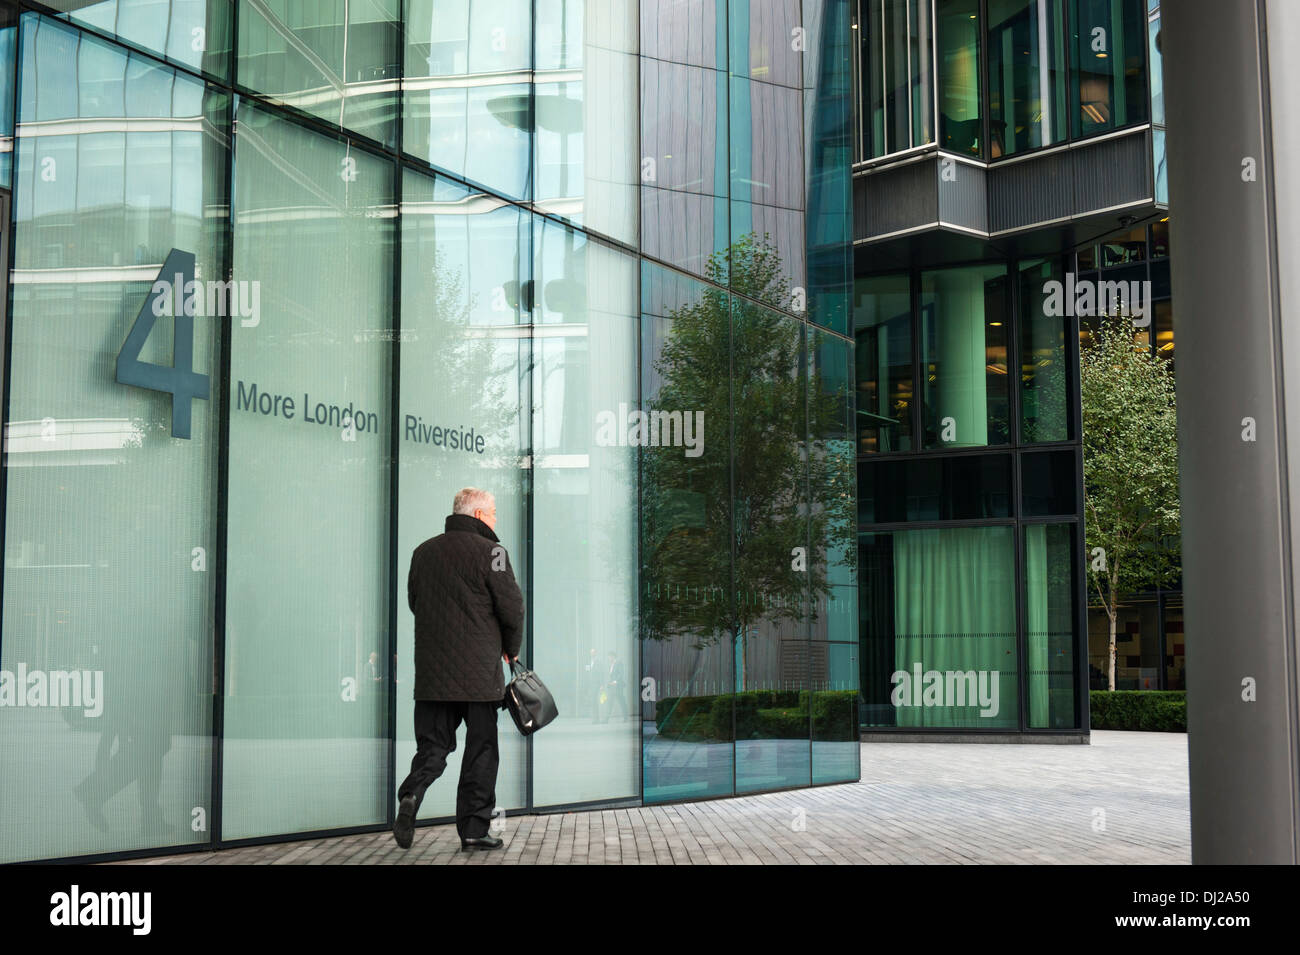 More london photos more london images alamy